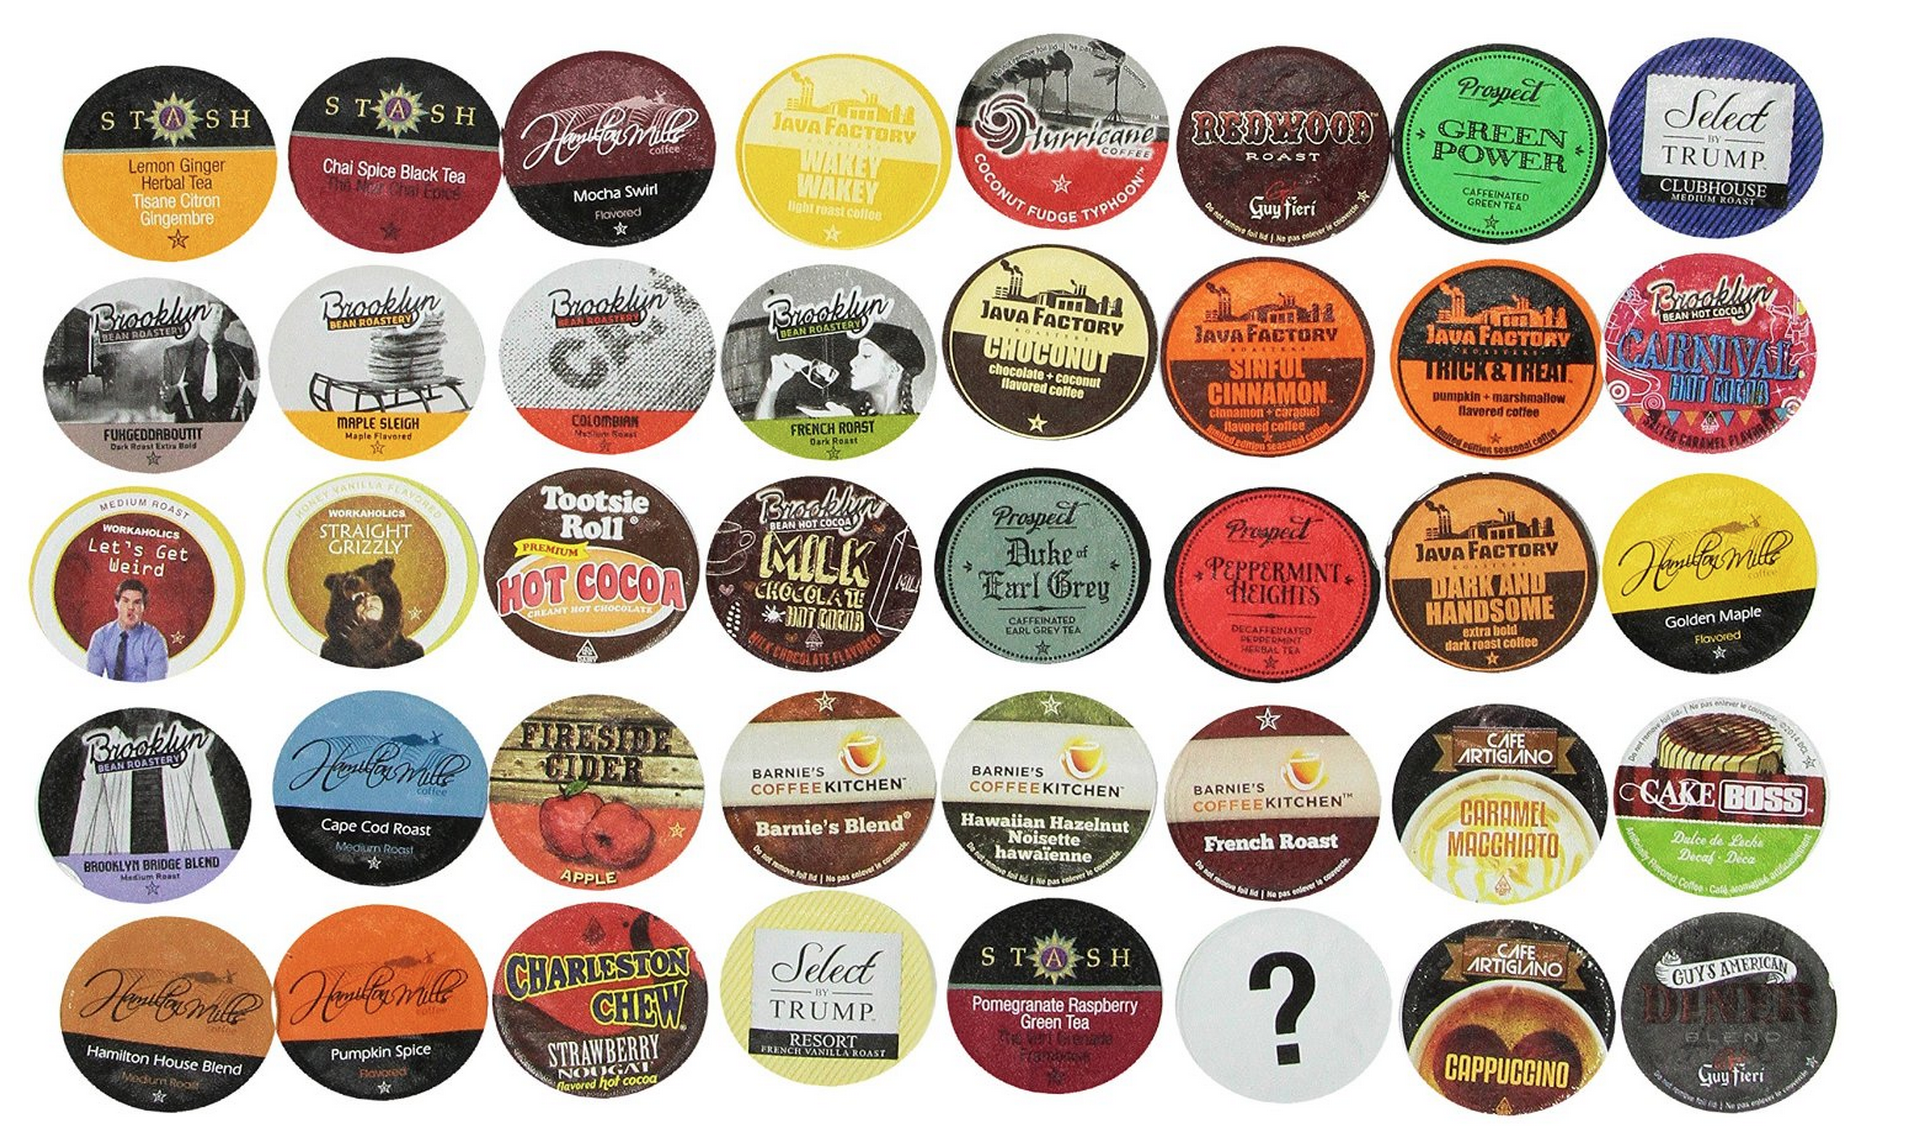 40 Count Two Rivers Bit of Everything K-Cup Sampler Pack Only $15.20 (Just 38¢ Per Cup!)